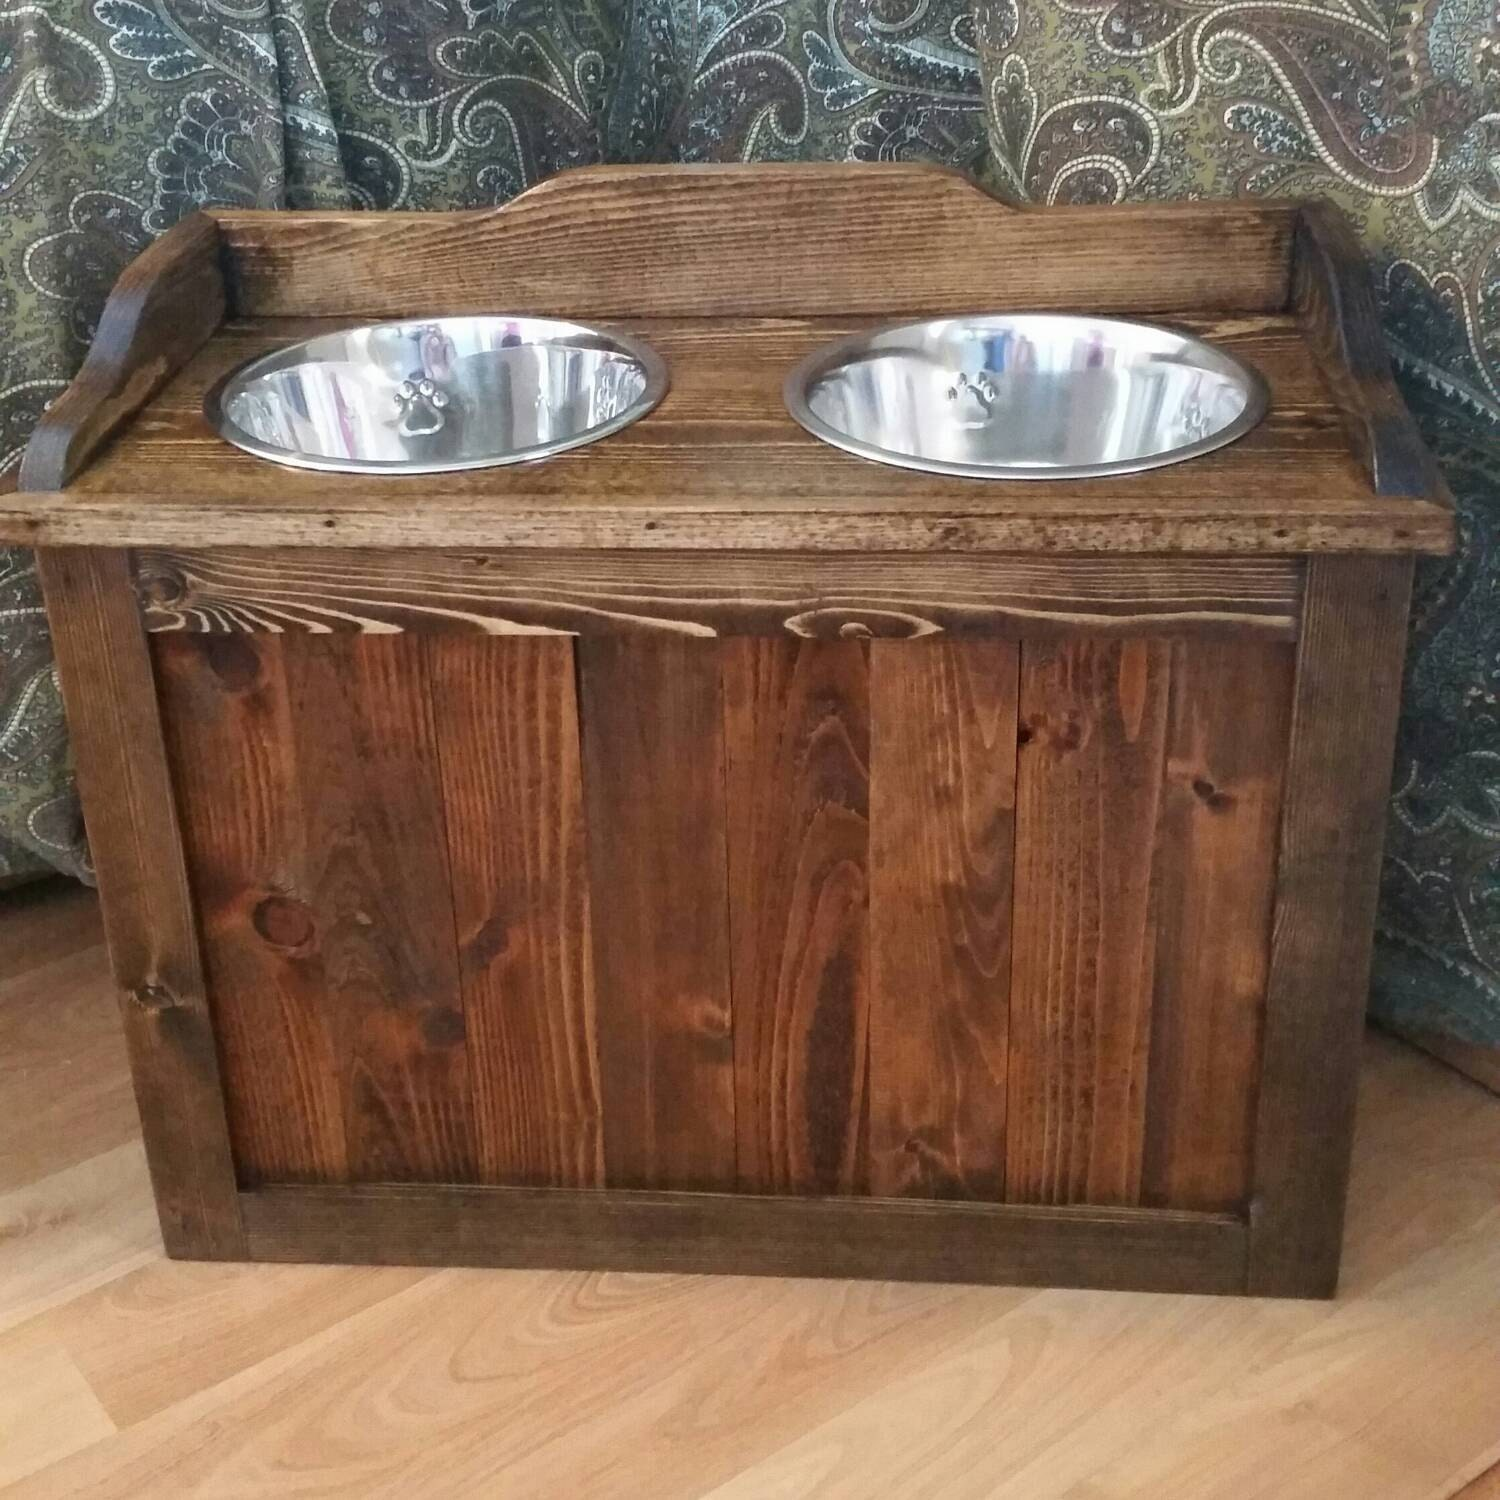 an use feeder save top now to reasons our automatic dog dogs